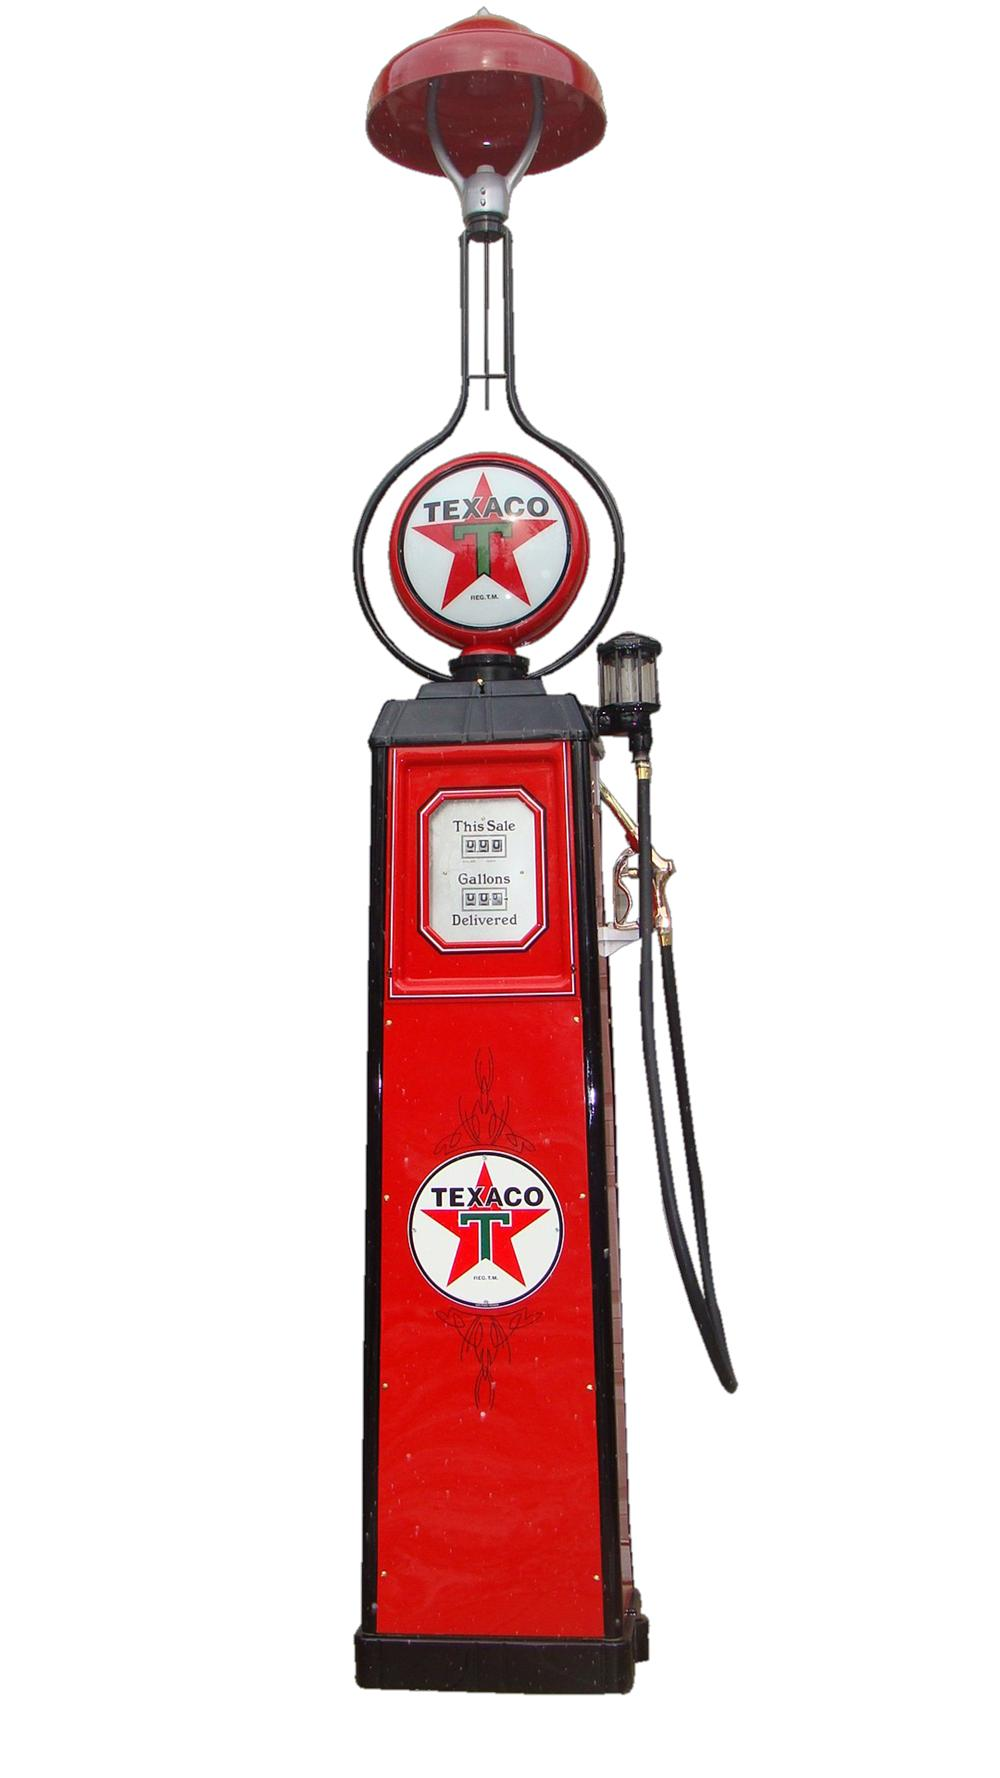 Marvelous and rare 1935 Texaco Oil service station Wayne model #40 restored gas pump with station lighter attached. - Front 3/4 - 117974